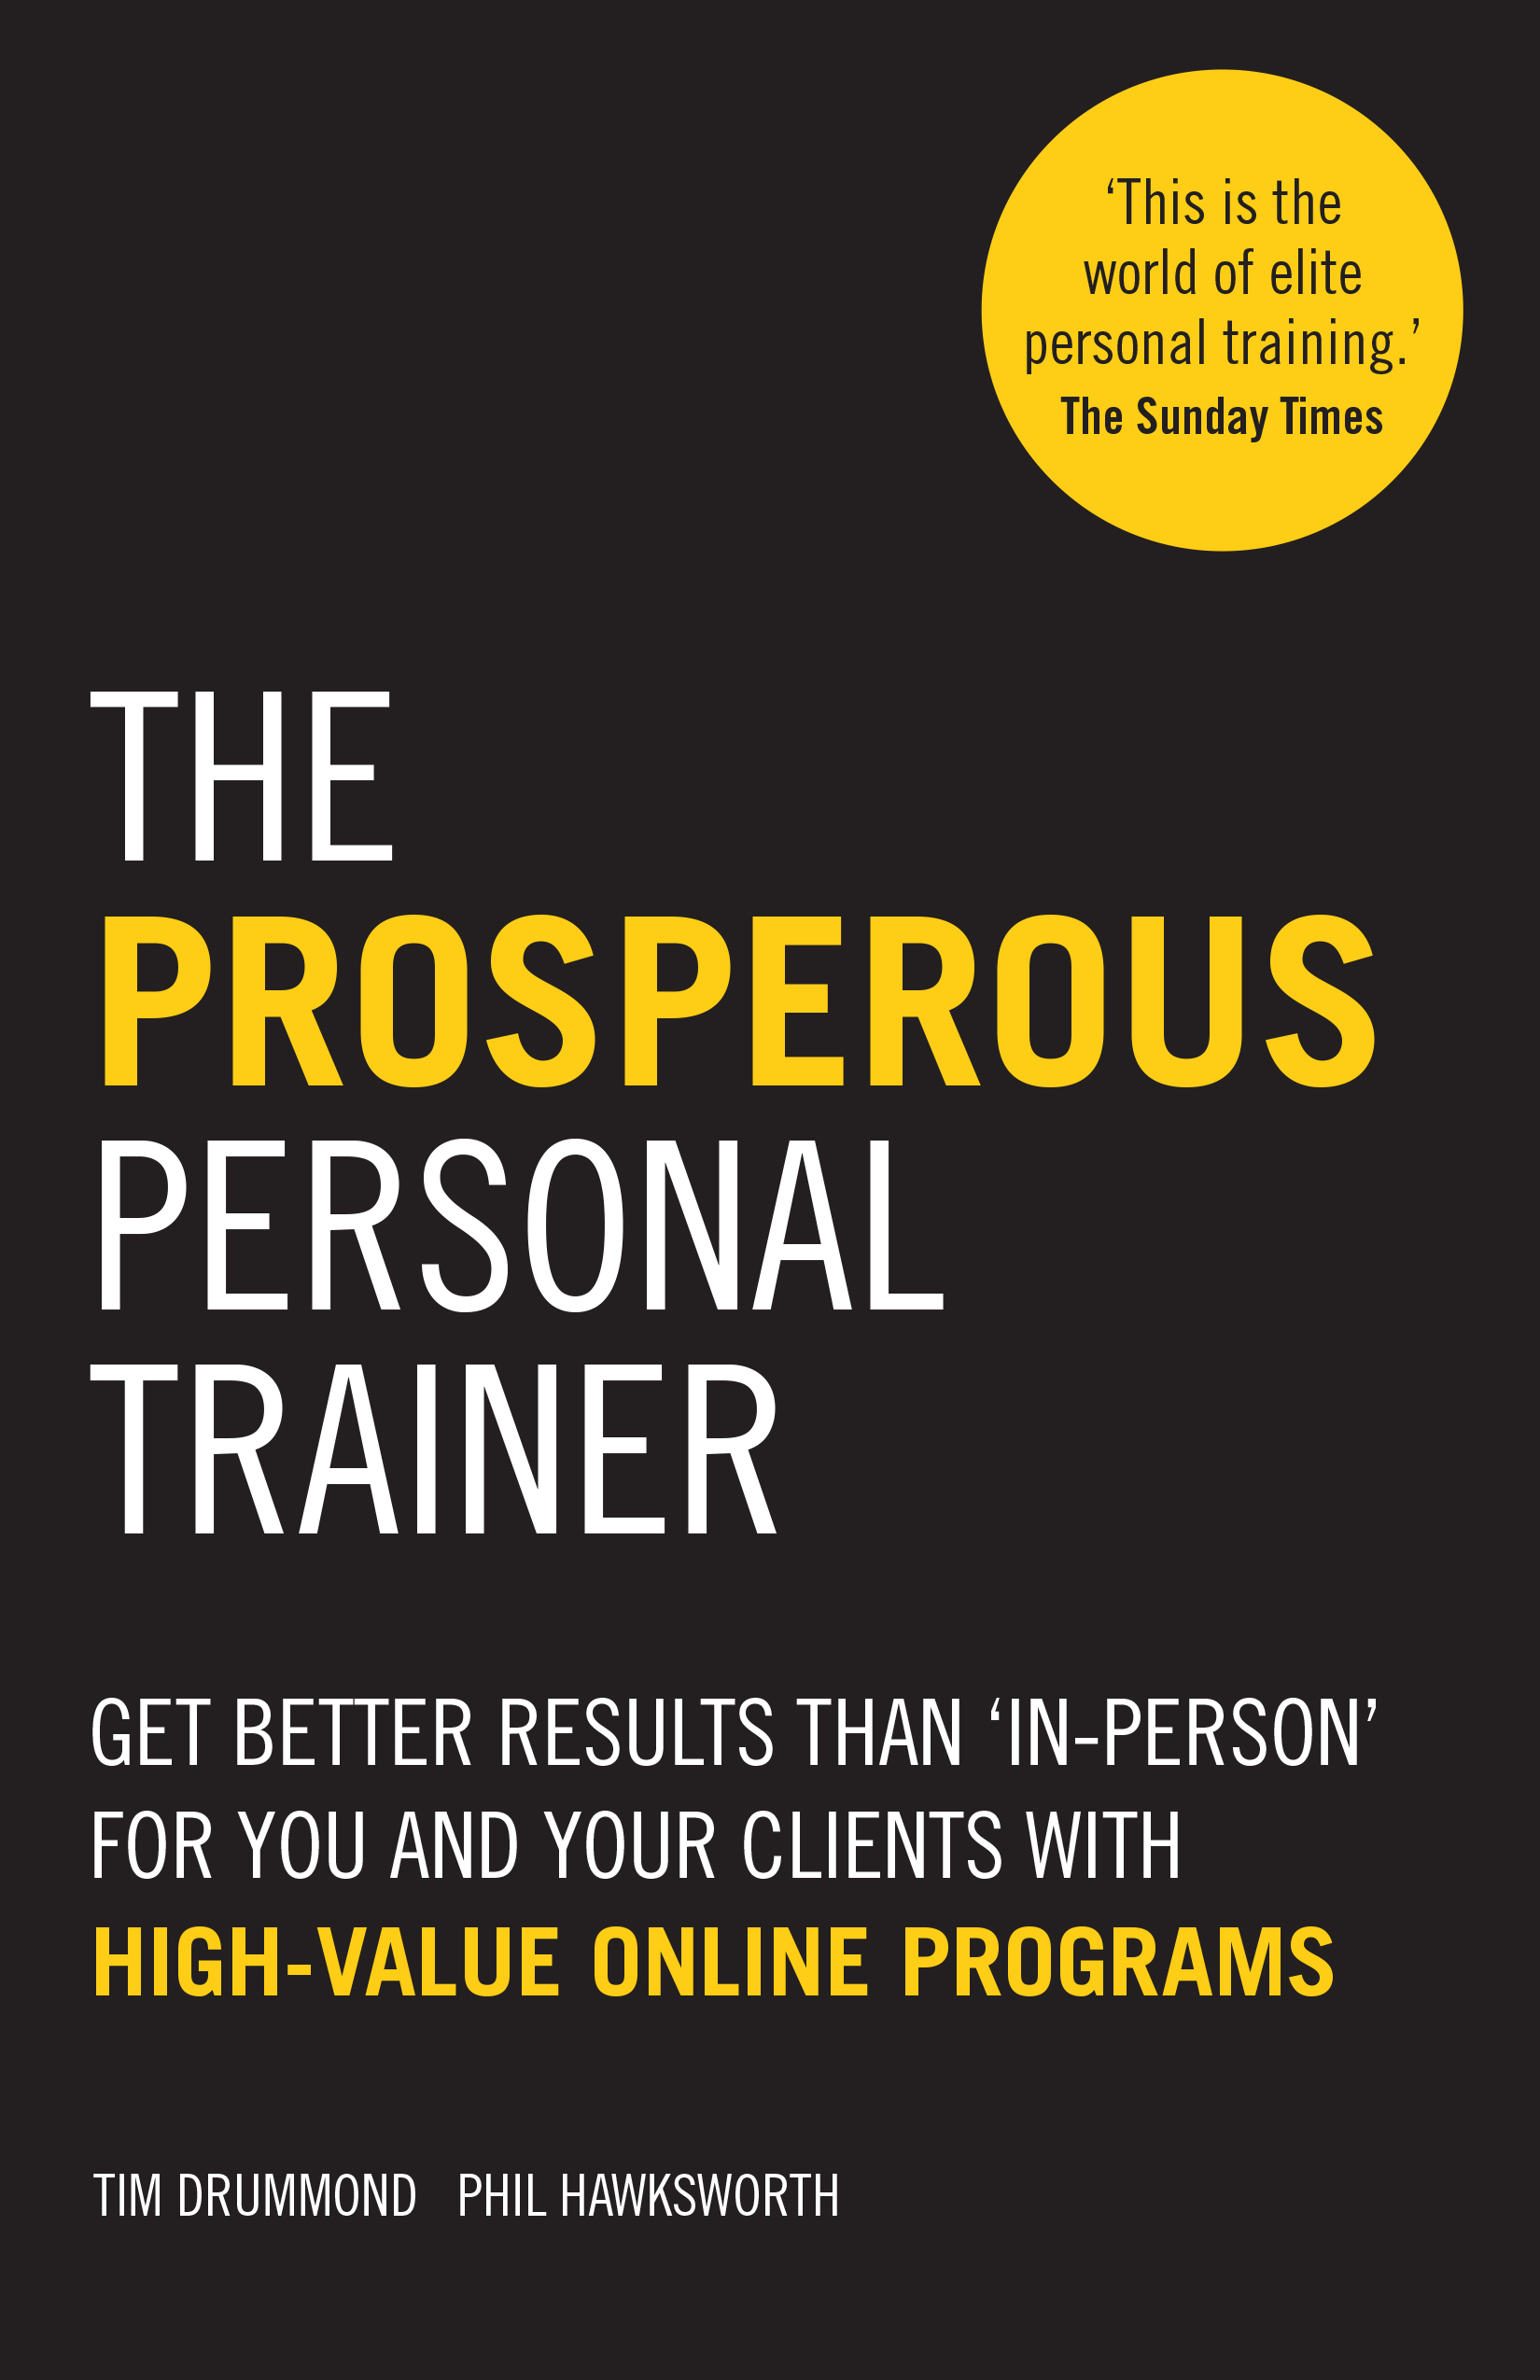 The Prosperous Personal Trainer